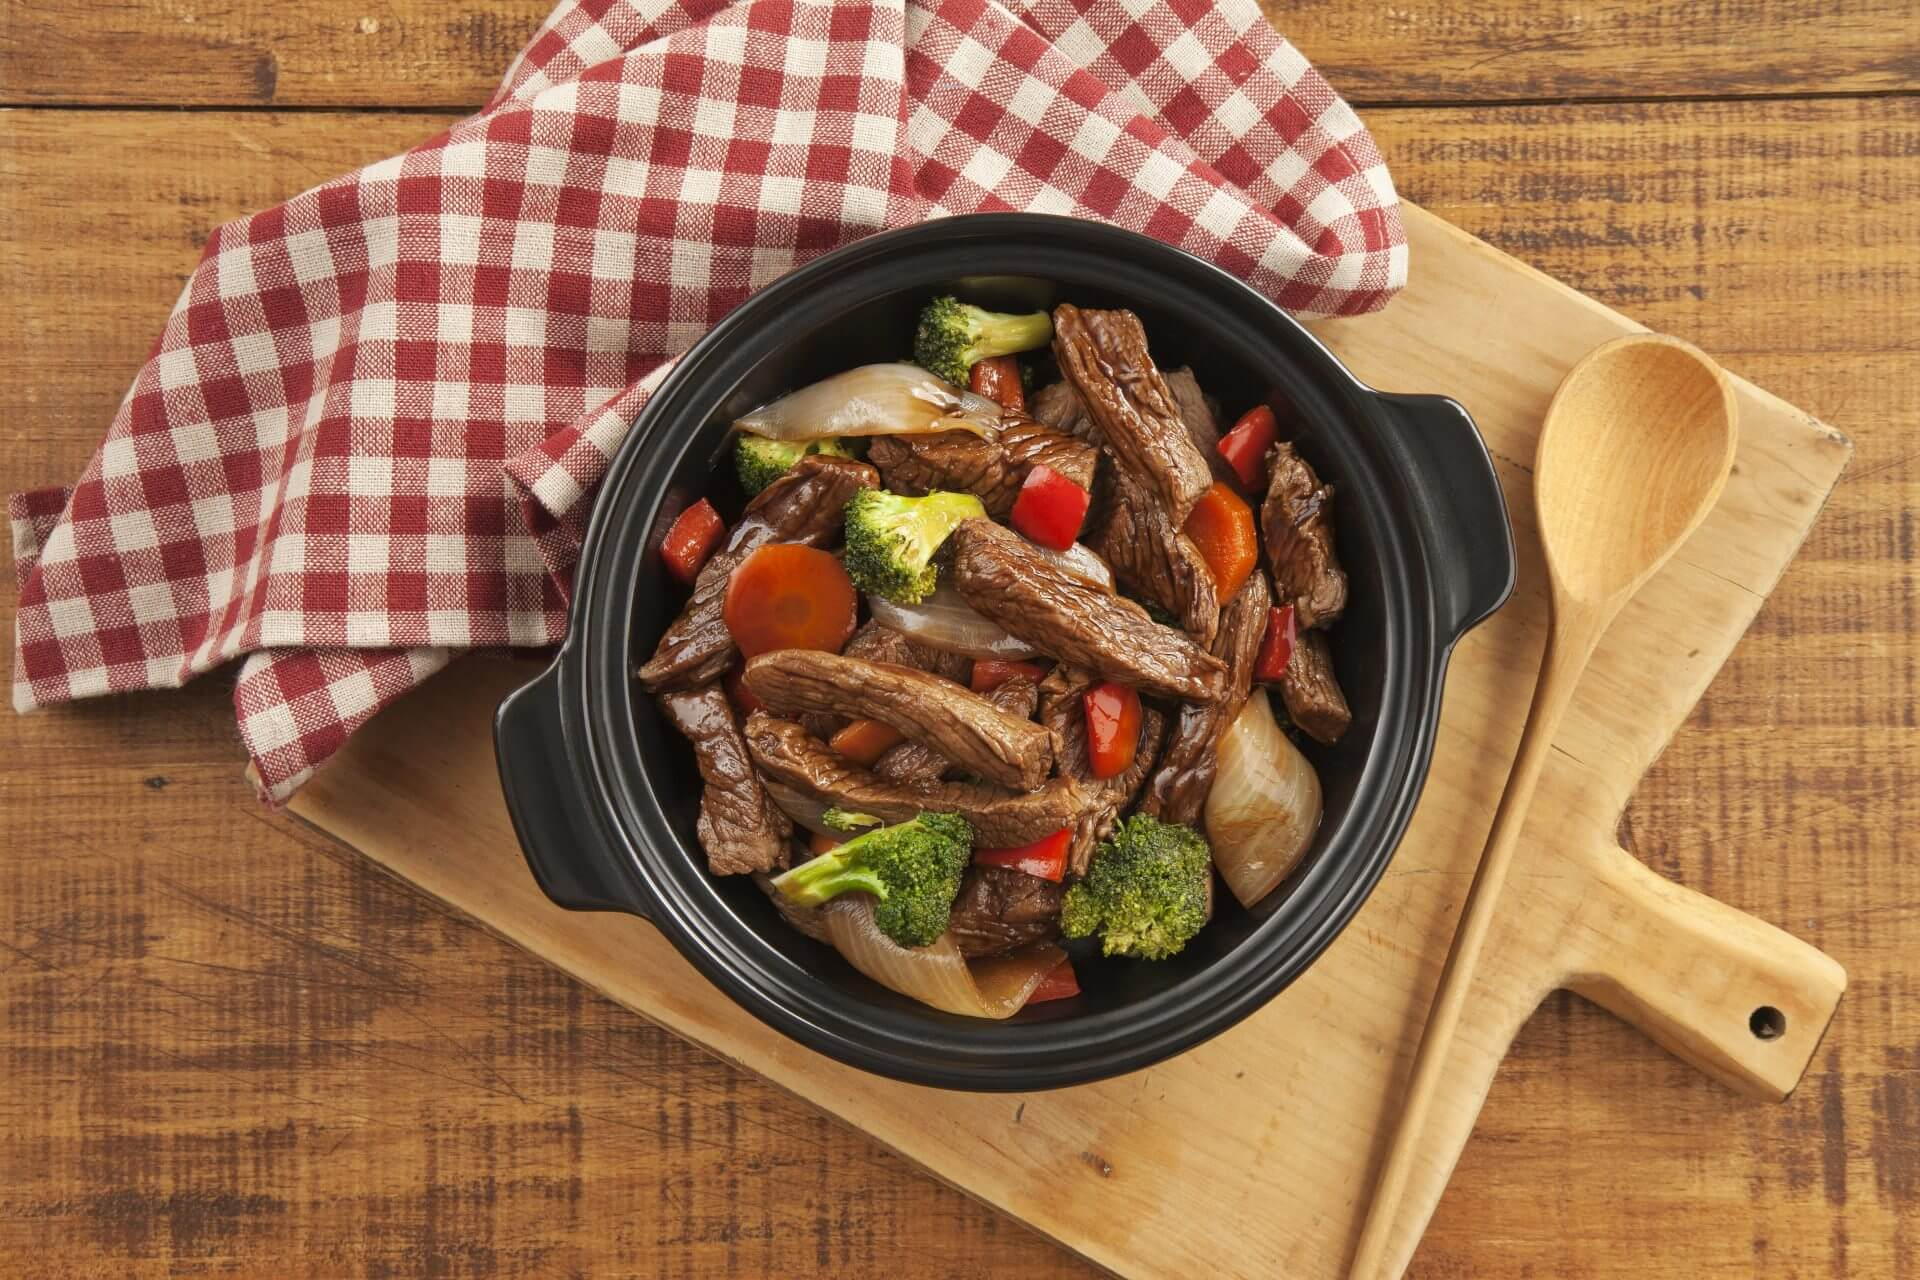 Beef And Vegetable Stir Fry With Umami Umami Recipes Beef And Vegetable Stir Fry With Umami About Us Ajinomoto Group Global Website Eat Well Live Well